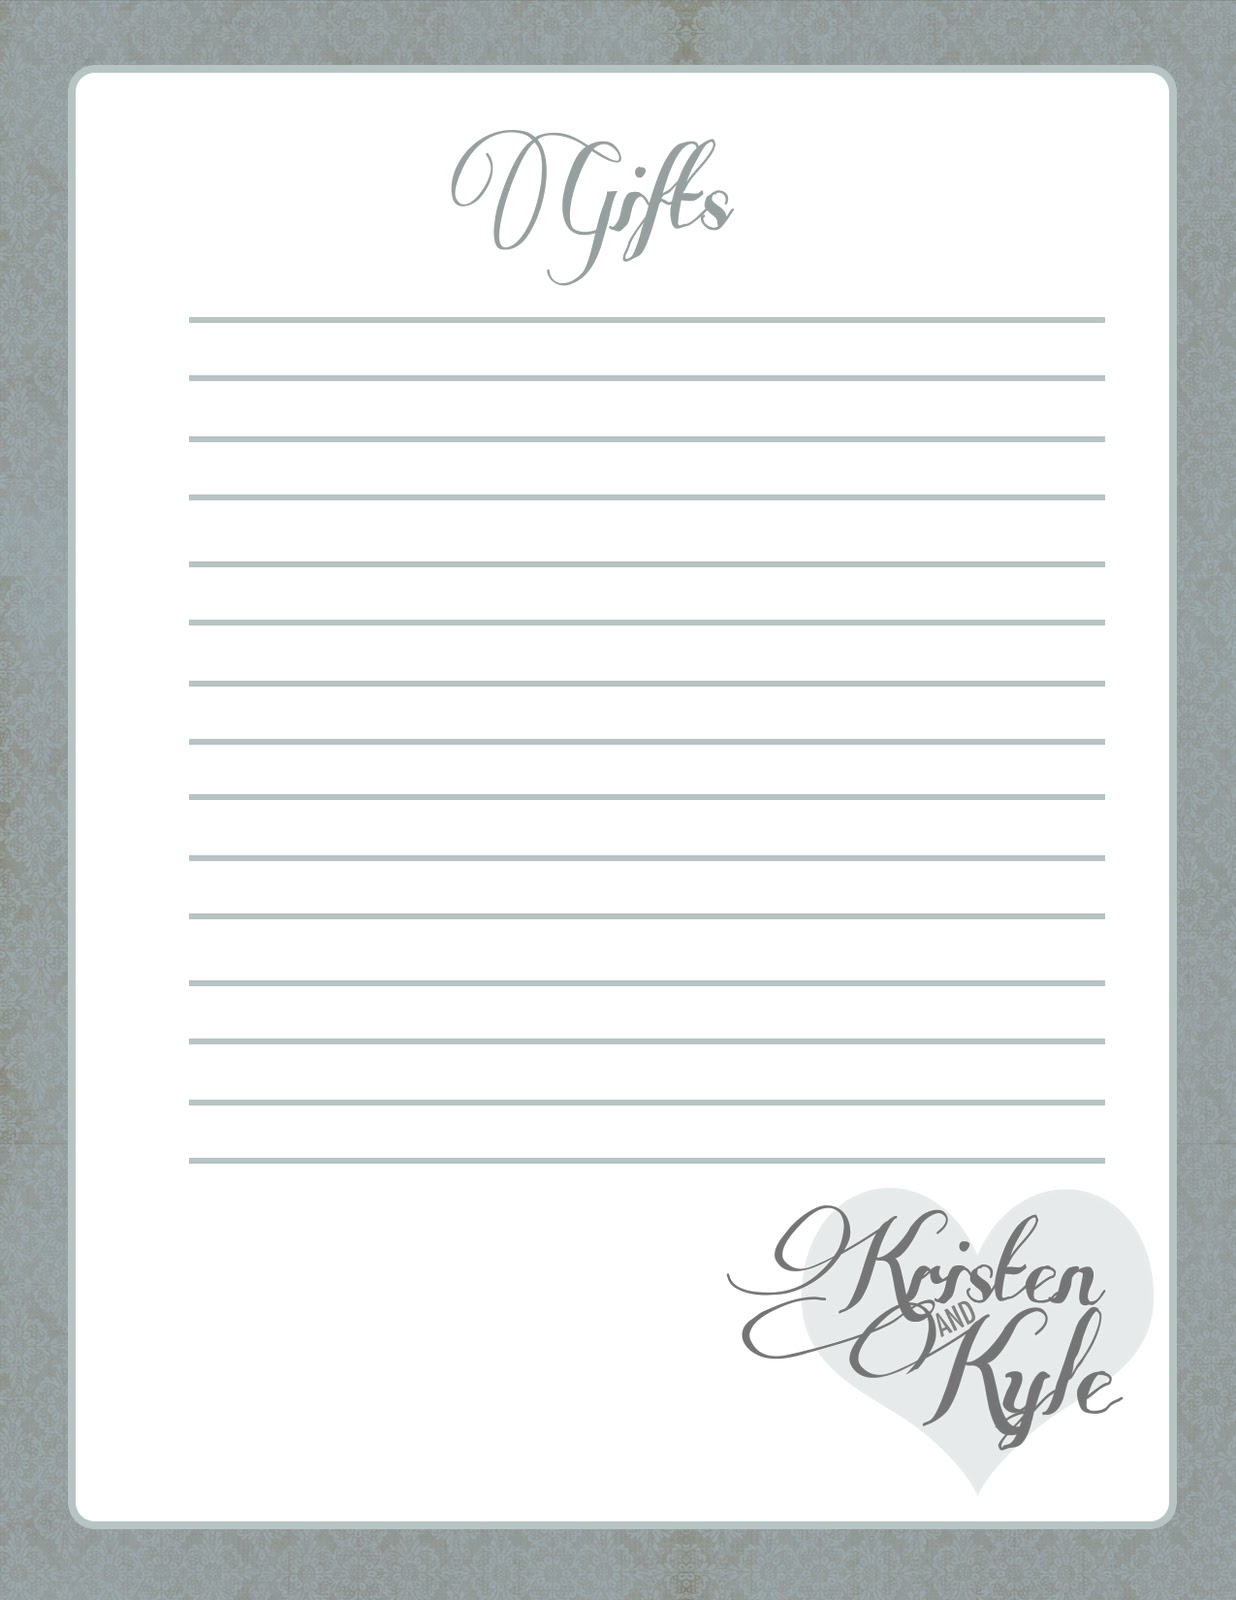 Wedding Gift Checklist : Bridal+Shower+Gift+List+Template Baby Shower Gift List Event...